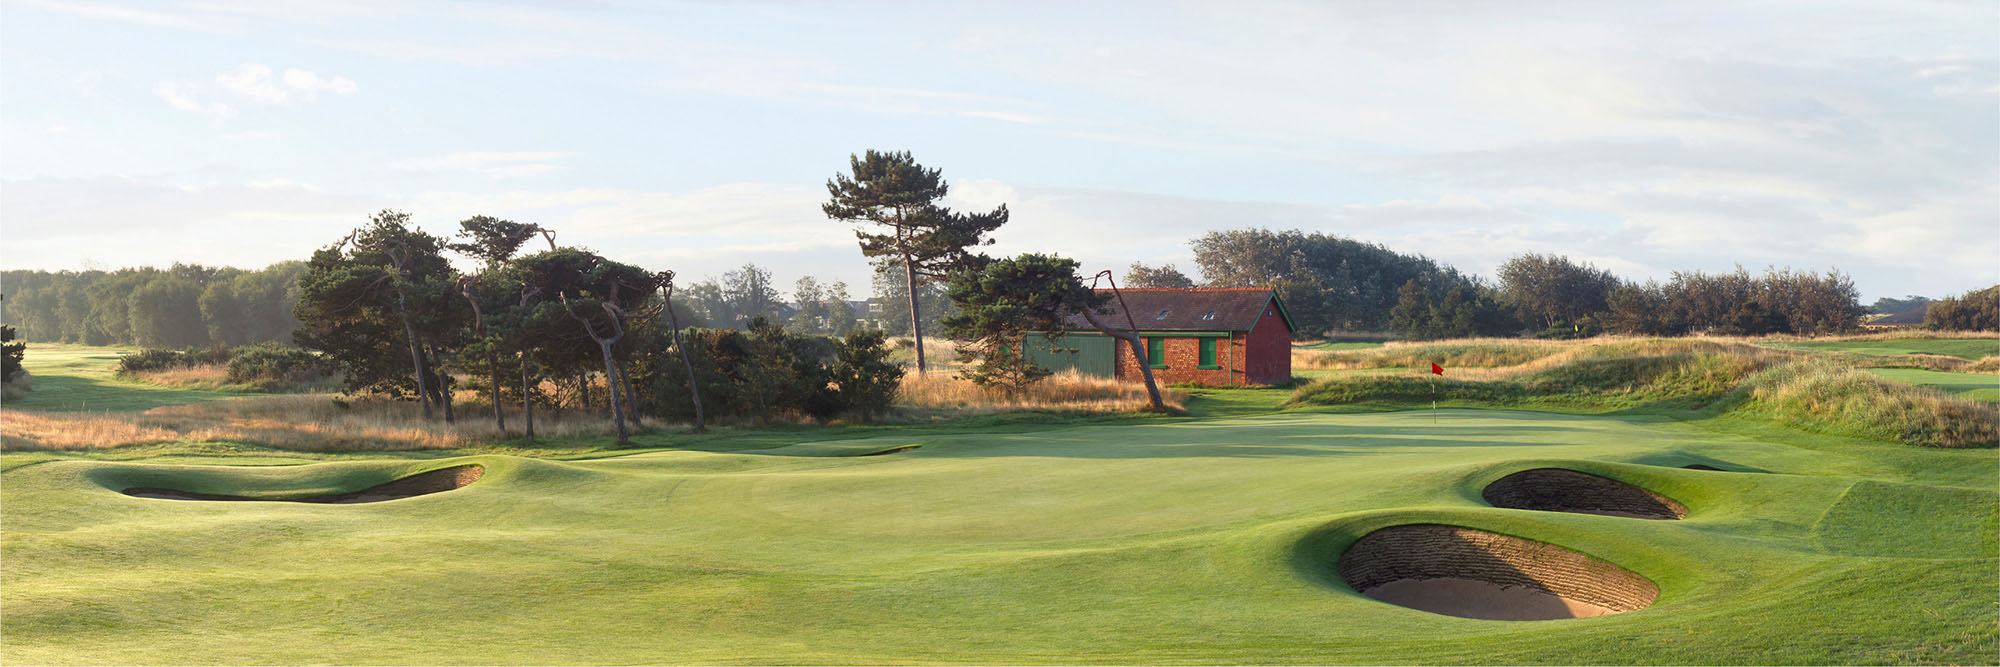 Golf Course Image - Royal Lytham and St Anne's No. 13